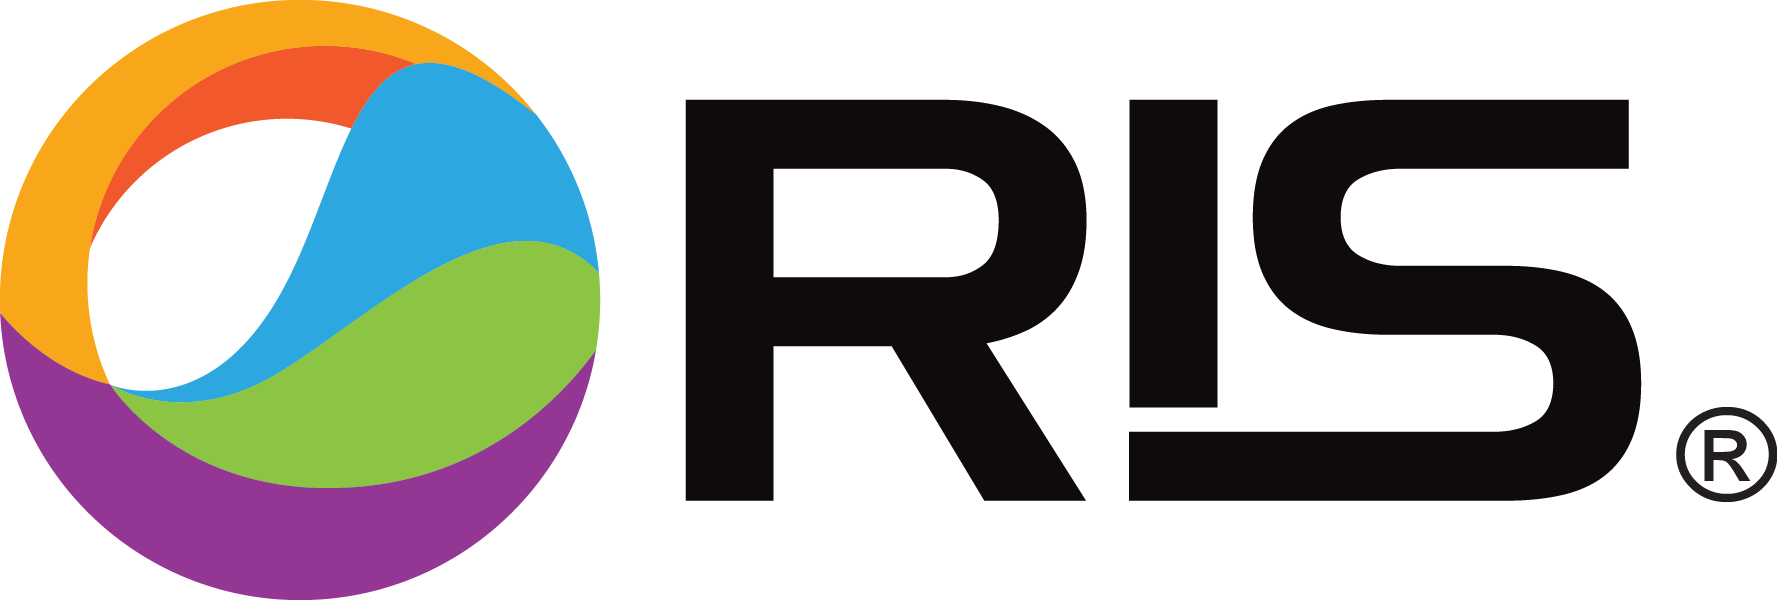 RIS Logo with Text and Registerd Trademark v2